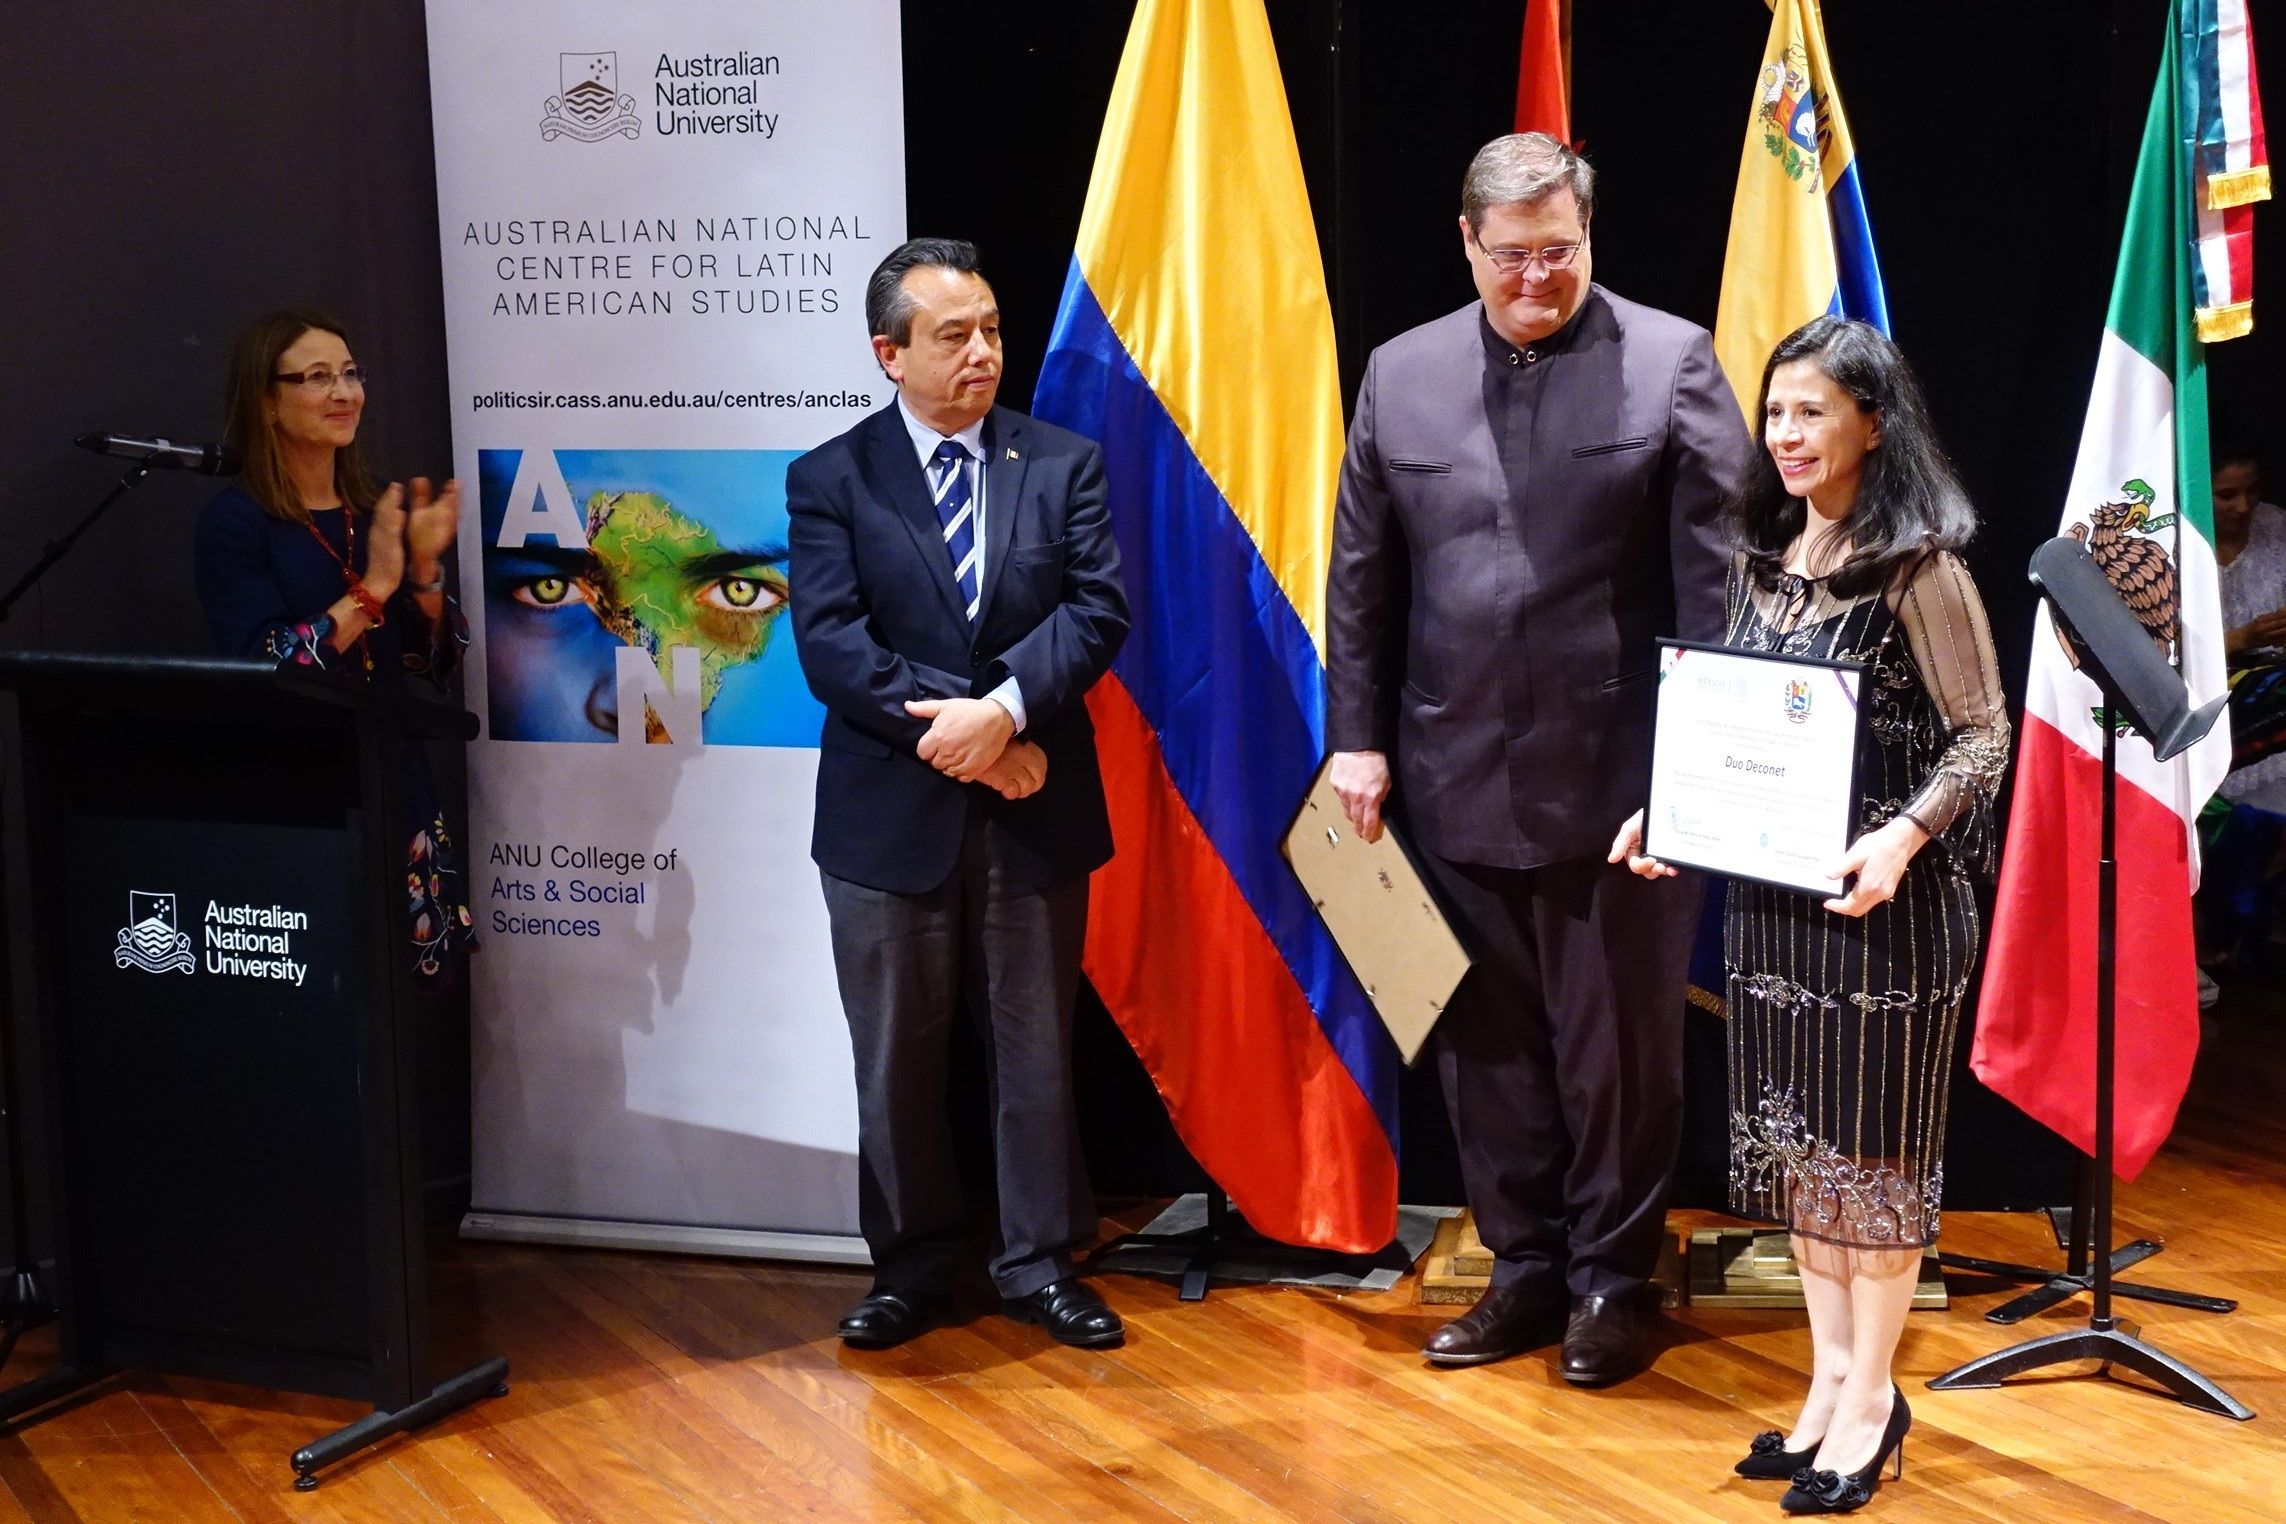 - Irma receiving an honorable award for her outstanding musical career and her contribution to promote Latin American cultural heritage in Australia